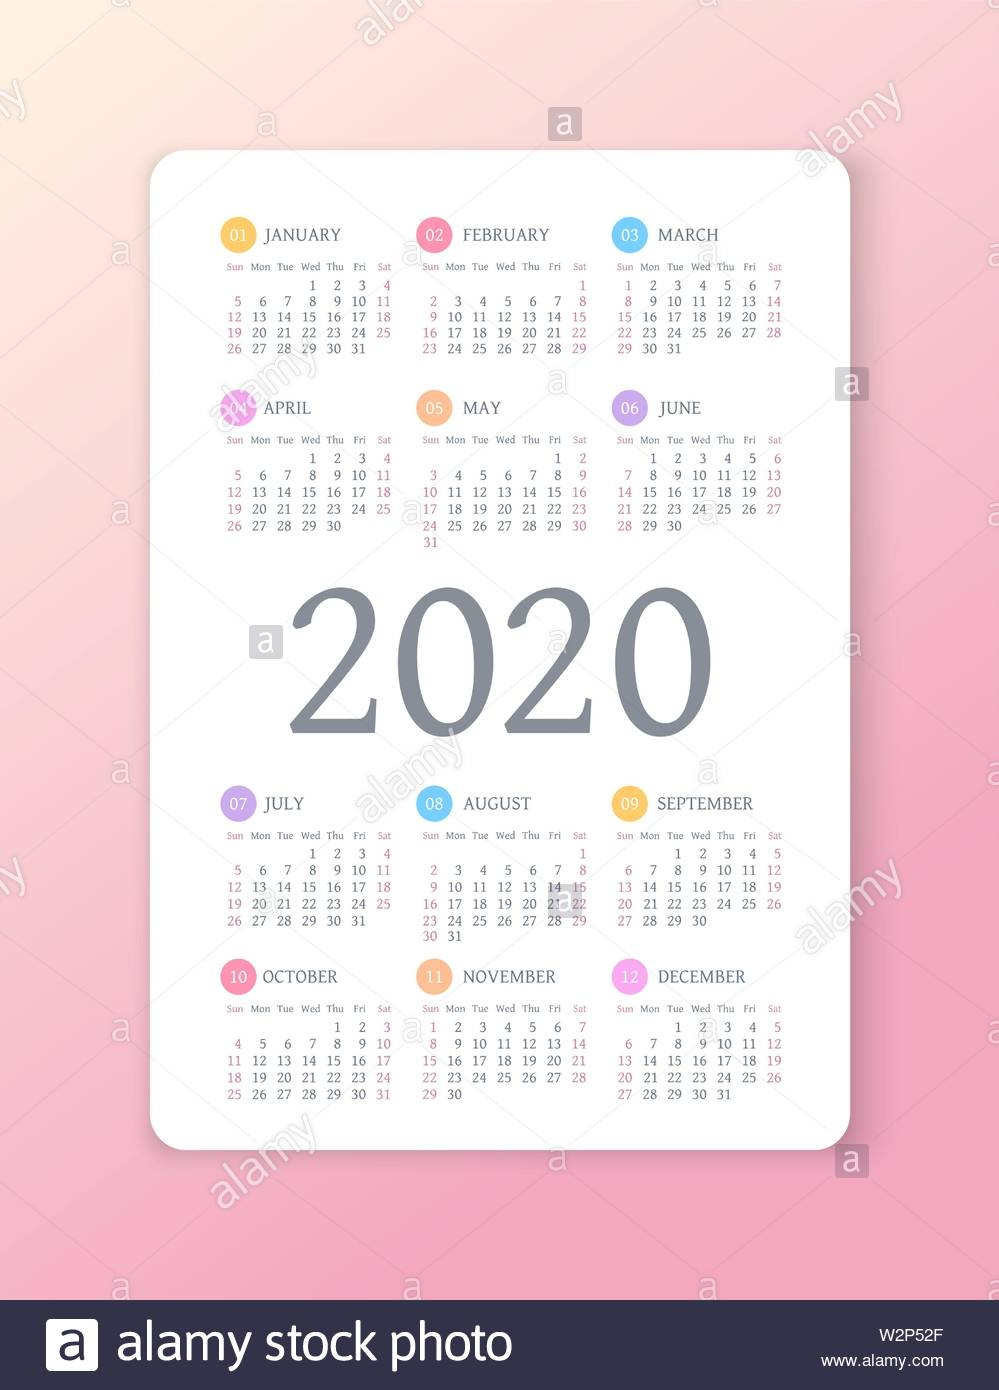 Calendar 2020 Year. Color Vector Template. Week Starts On Sunday regarding 2020 Printable Calendar With Sunday And Saturday Pink Color